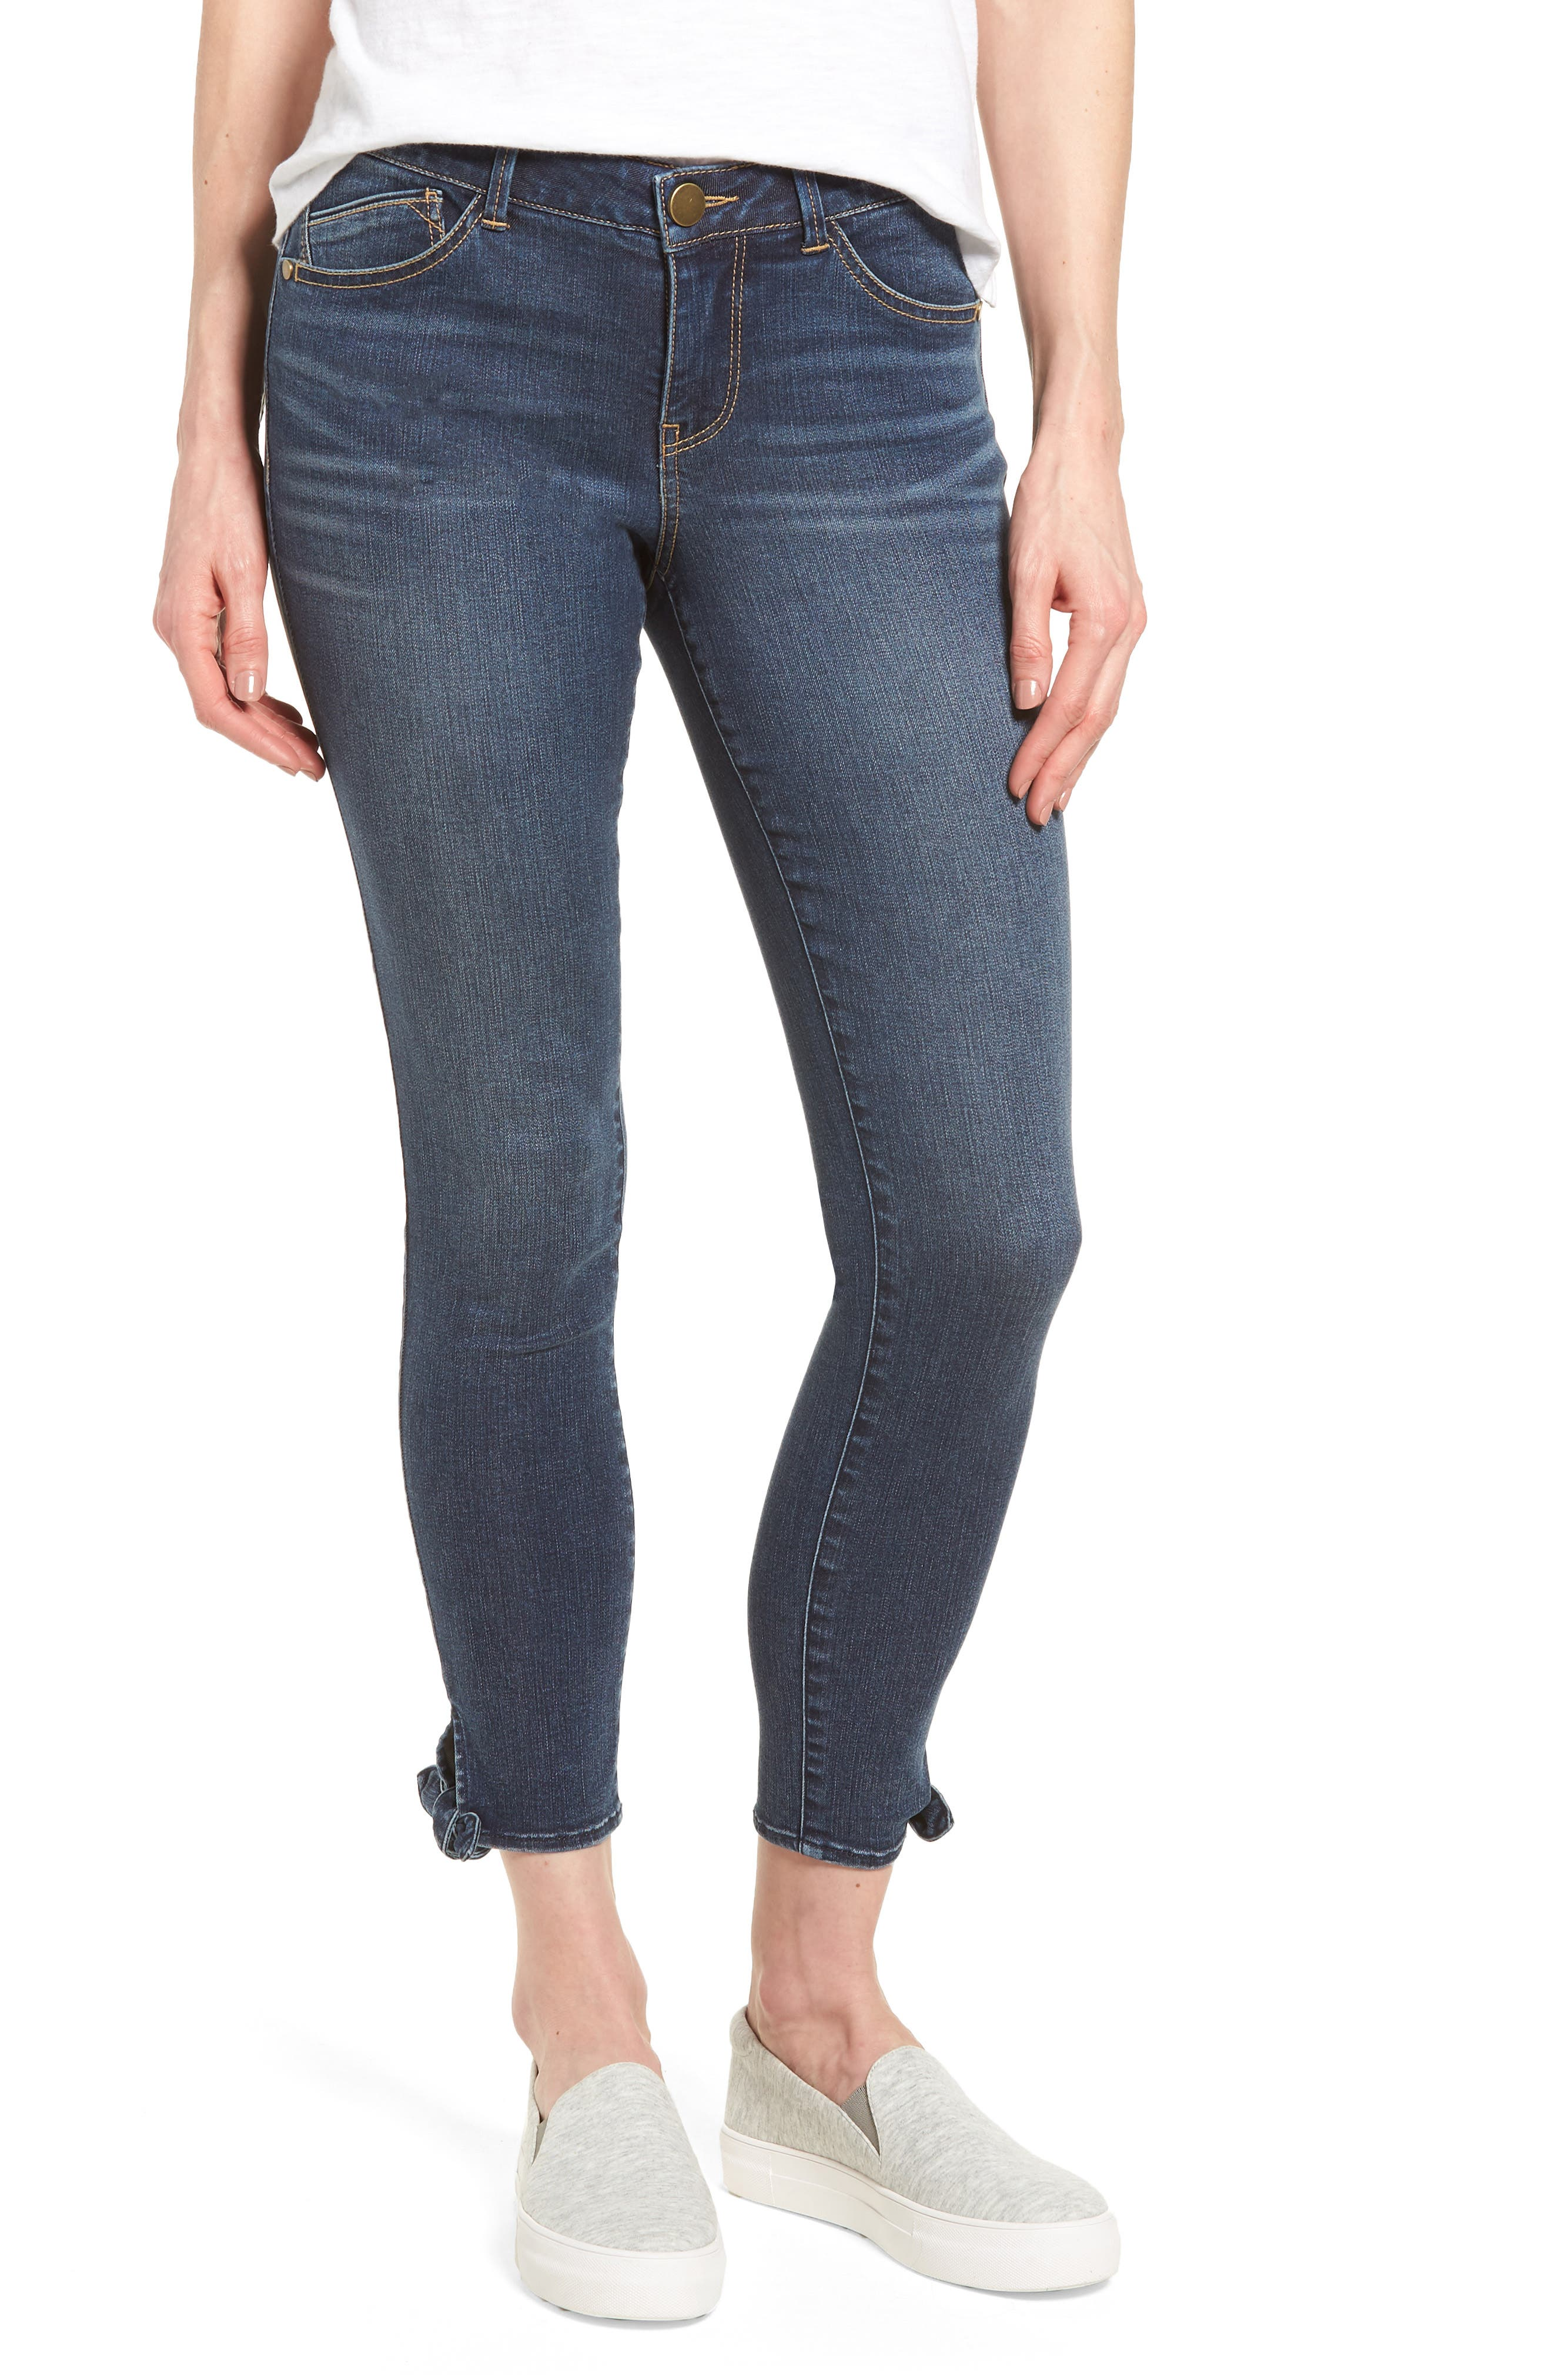 Ab-solution Ankle Skinny Skimmer Jeans,                             Main thumbnail 1, color,                             Bl- Blue